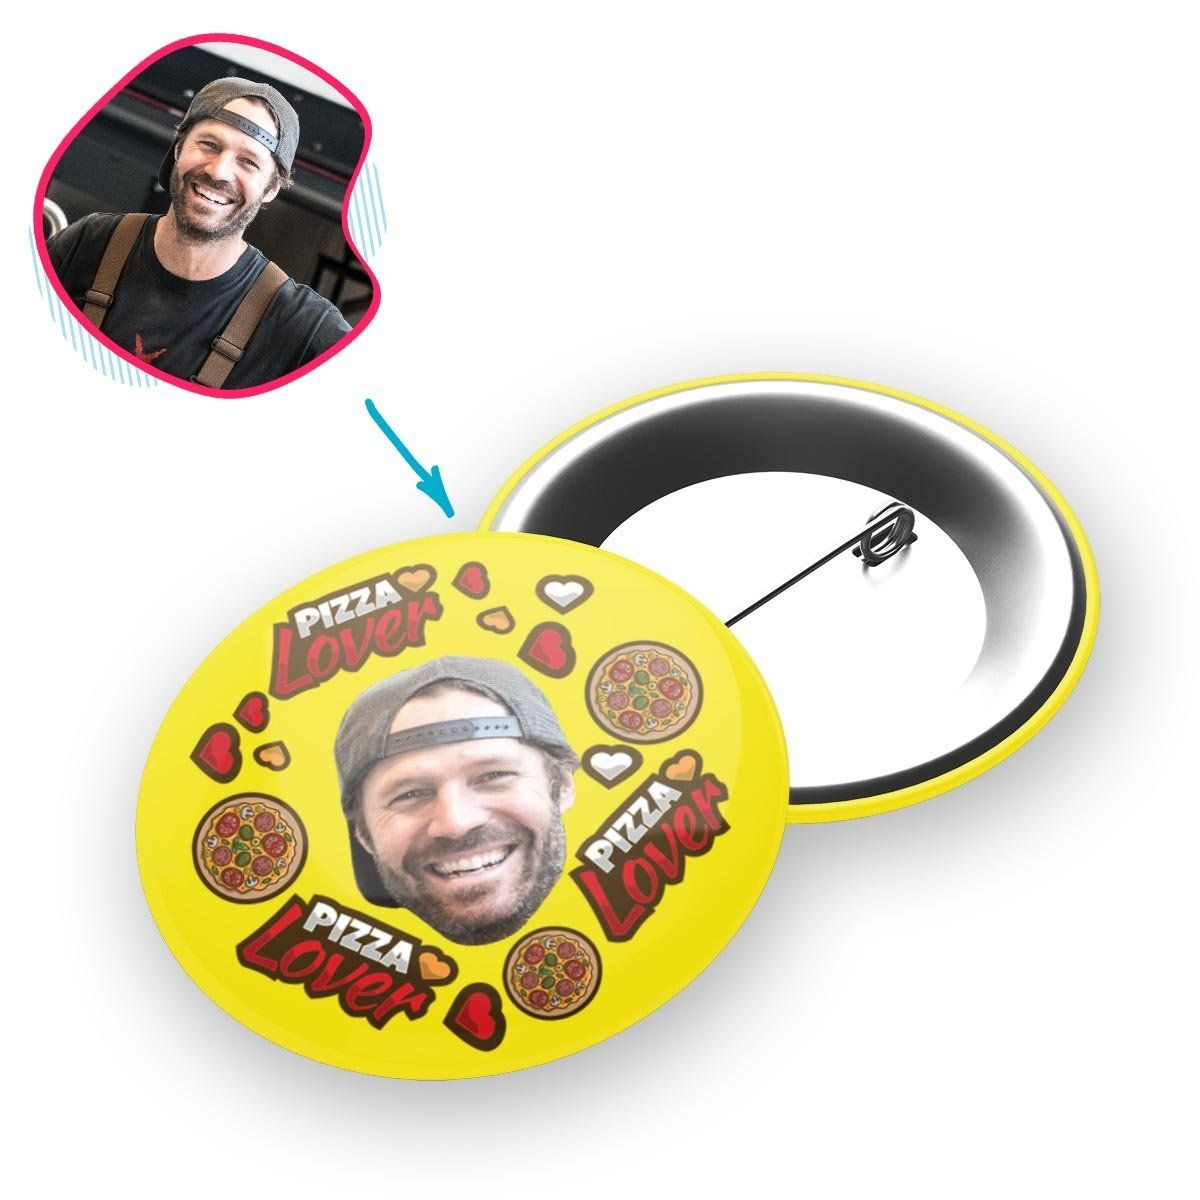 yellow Pizza Lover pin personalized with photo of face printed on it